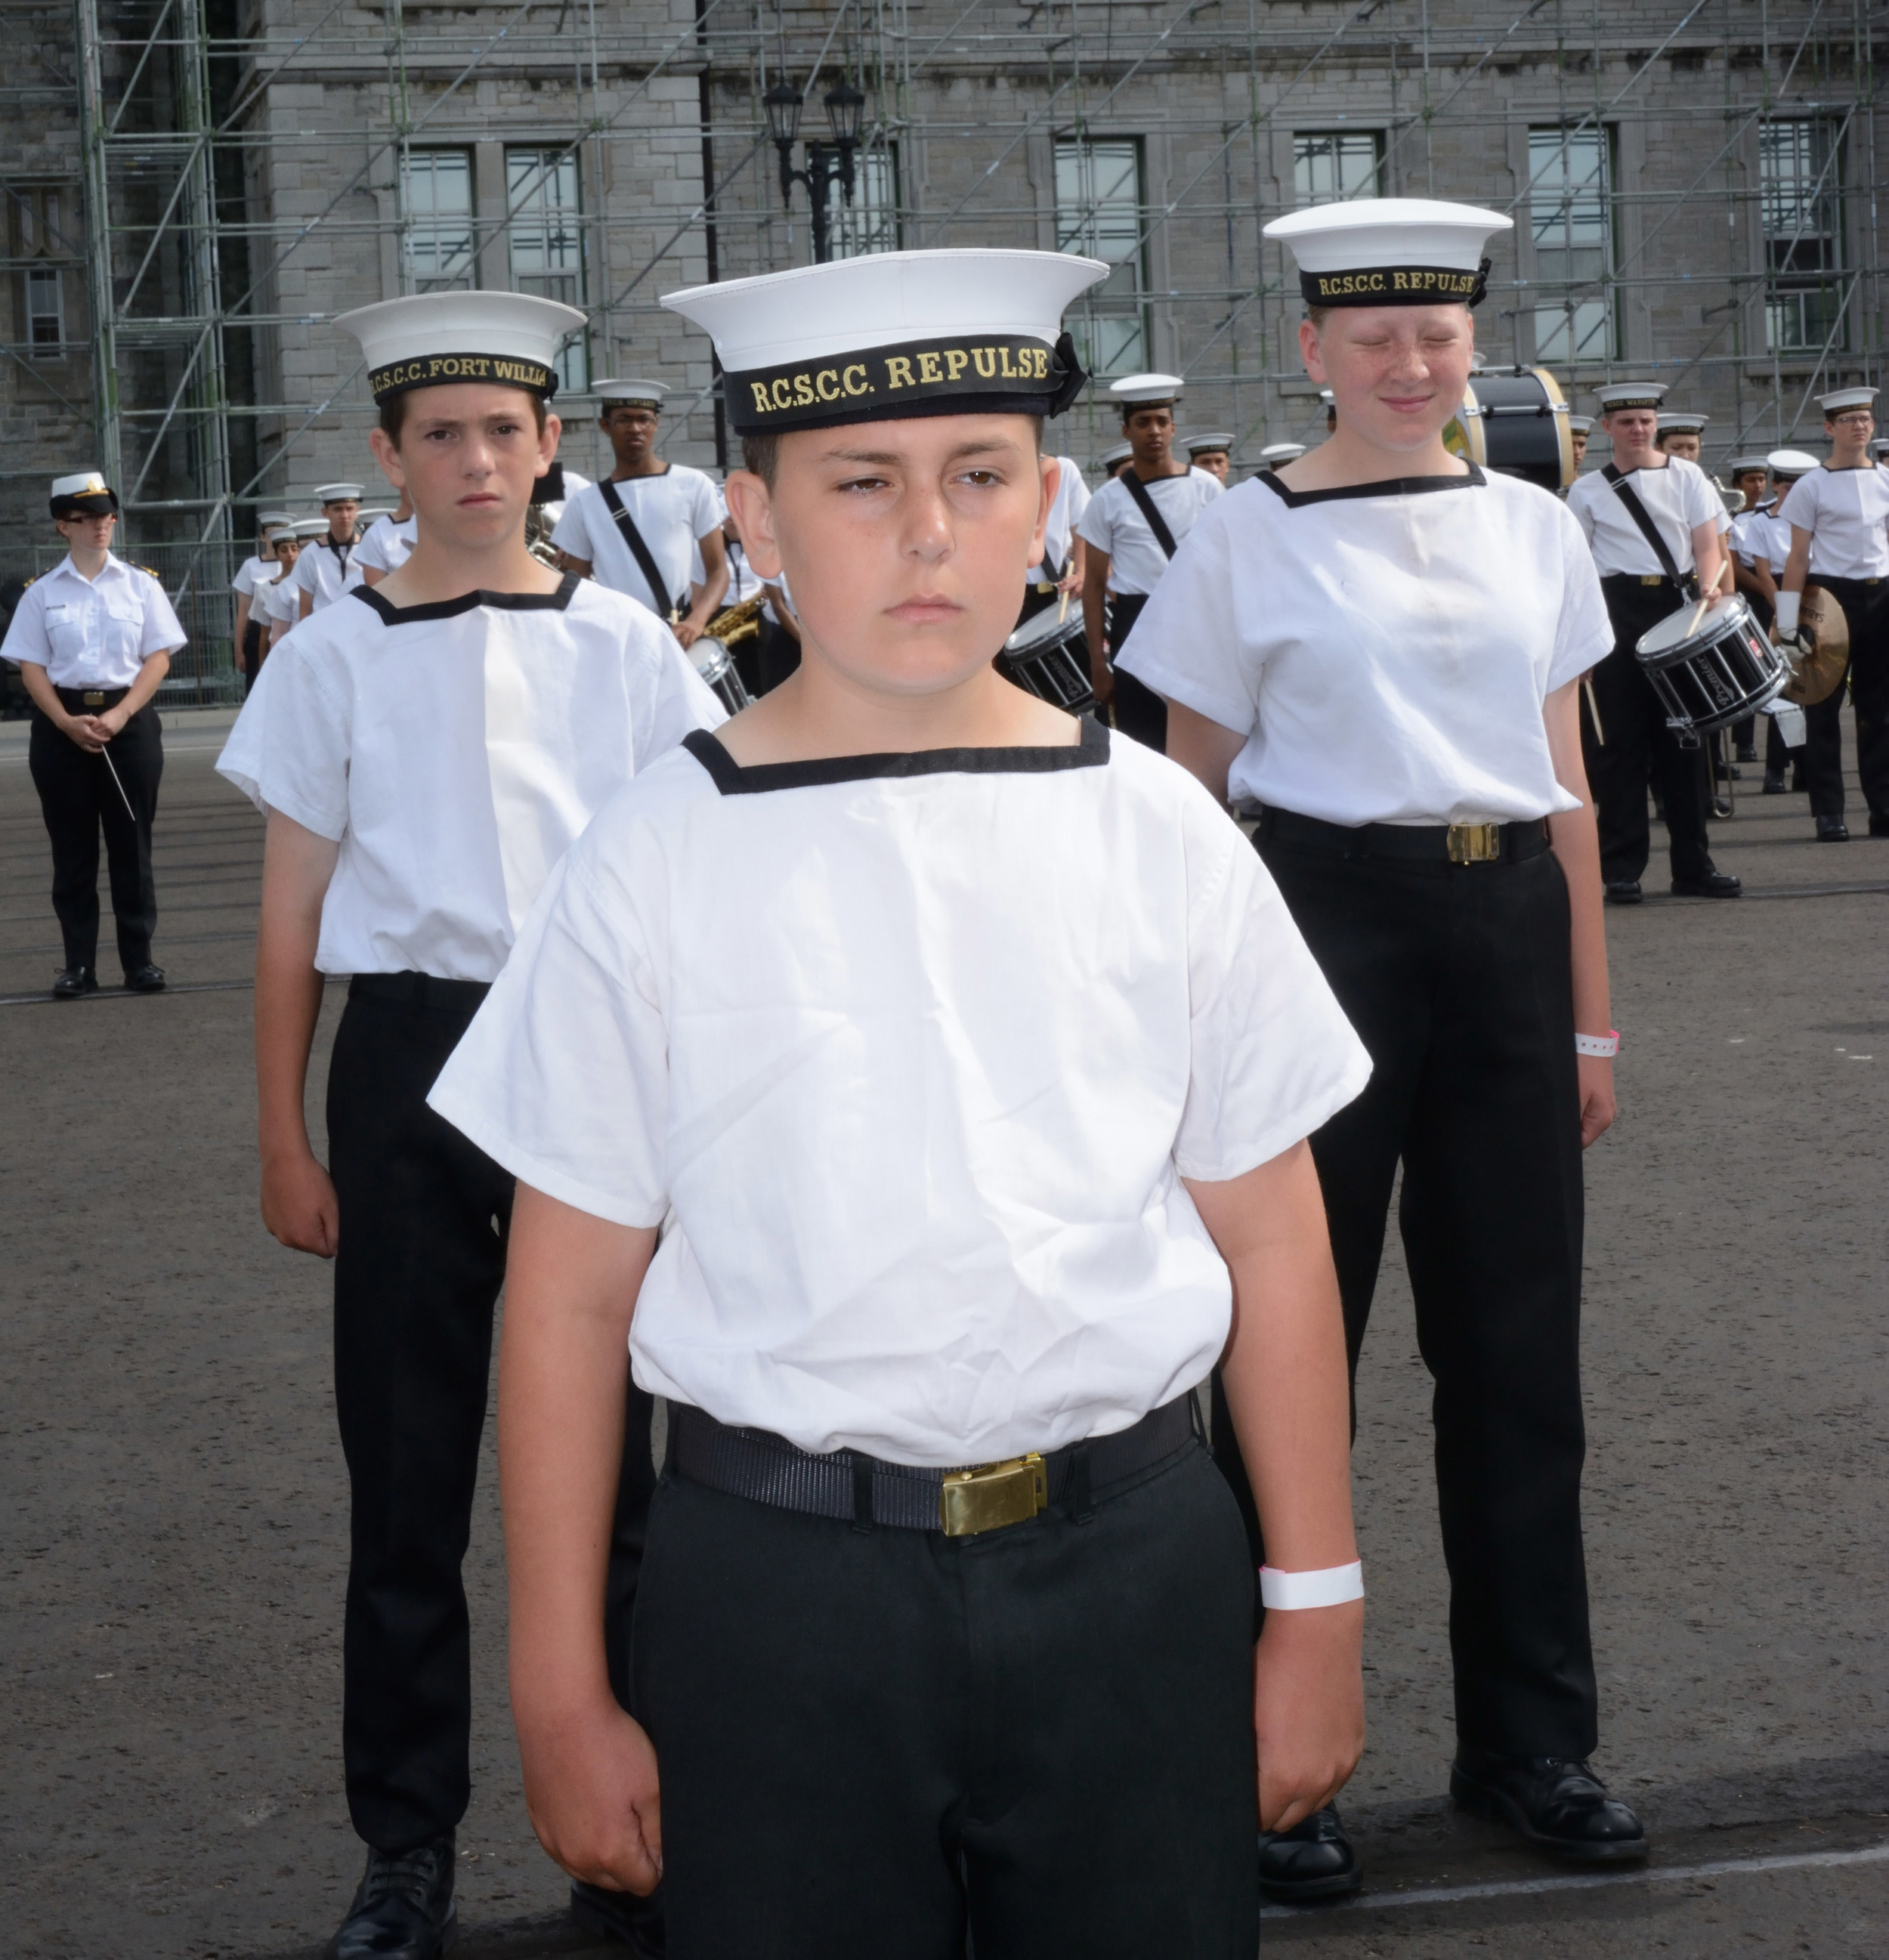 Ethan Adams capped off his two week long General Training course with a parade on the grounds of the Royal Military College. His training took in the scope of the sea cadet experience, including everything from sailing and seamanship, to ceremonial drill and marksmanship. (Sgt Kev Parle, DND)